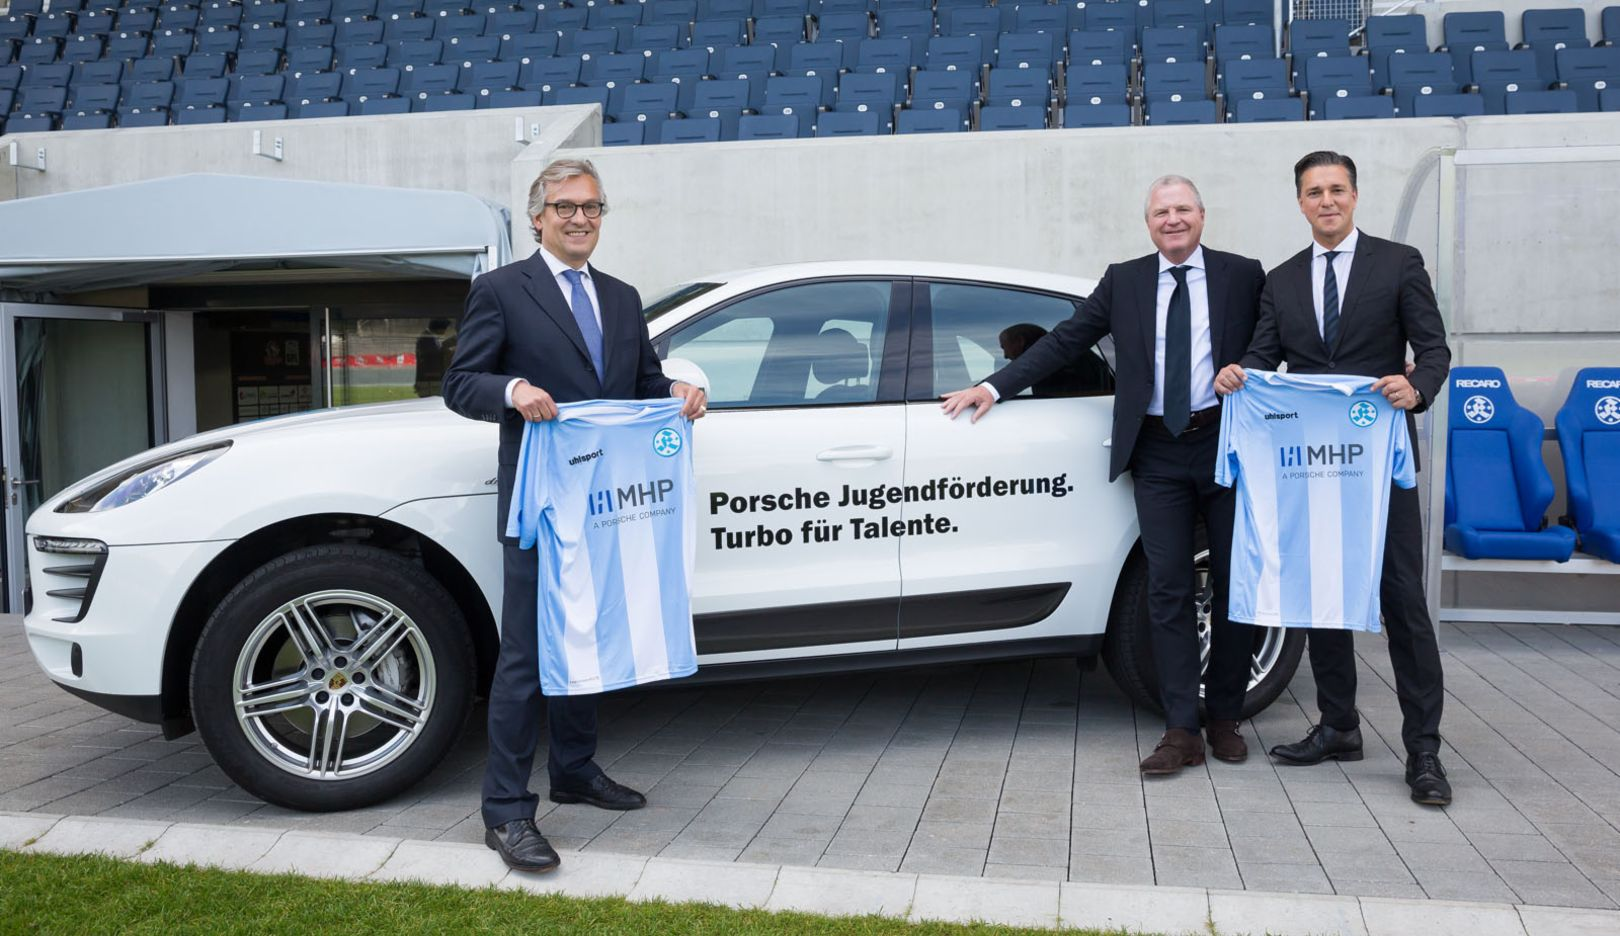 (l.-r.) Dr. Ralf Hofmann, Chairman of the Board of MHP, mit Prof. Dr. Rainer Lorz, President of the Stuttgarter Kickers, und Lutz Meschke, Member of the Executive Board Financial Affairs of Porsche AG, Macan Turbo, 2015, Porsche AG